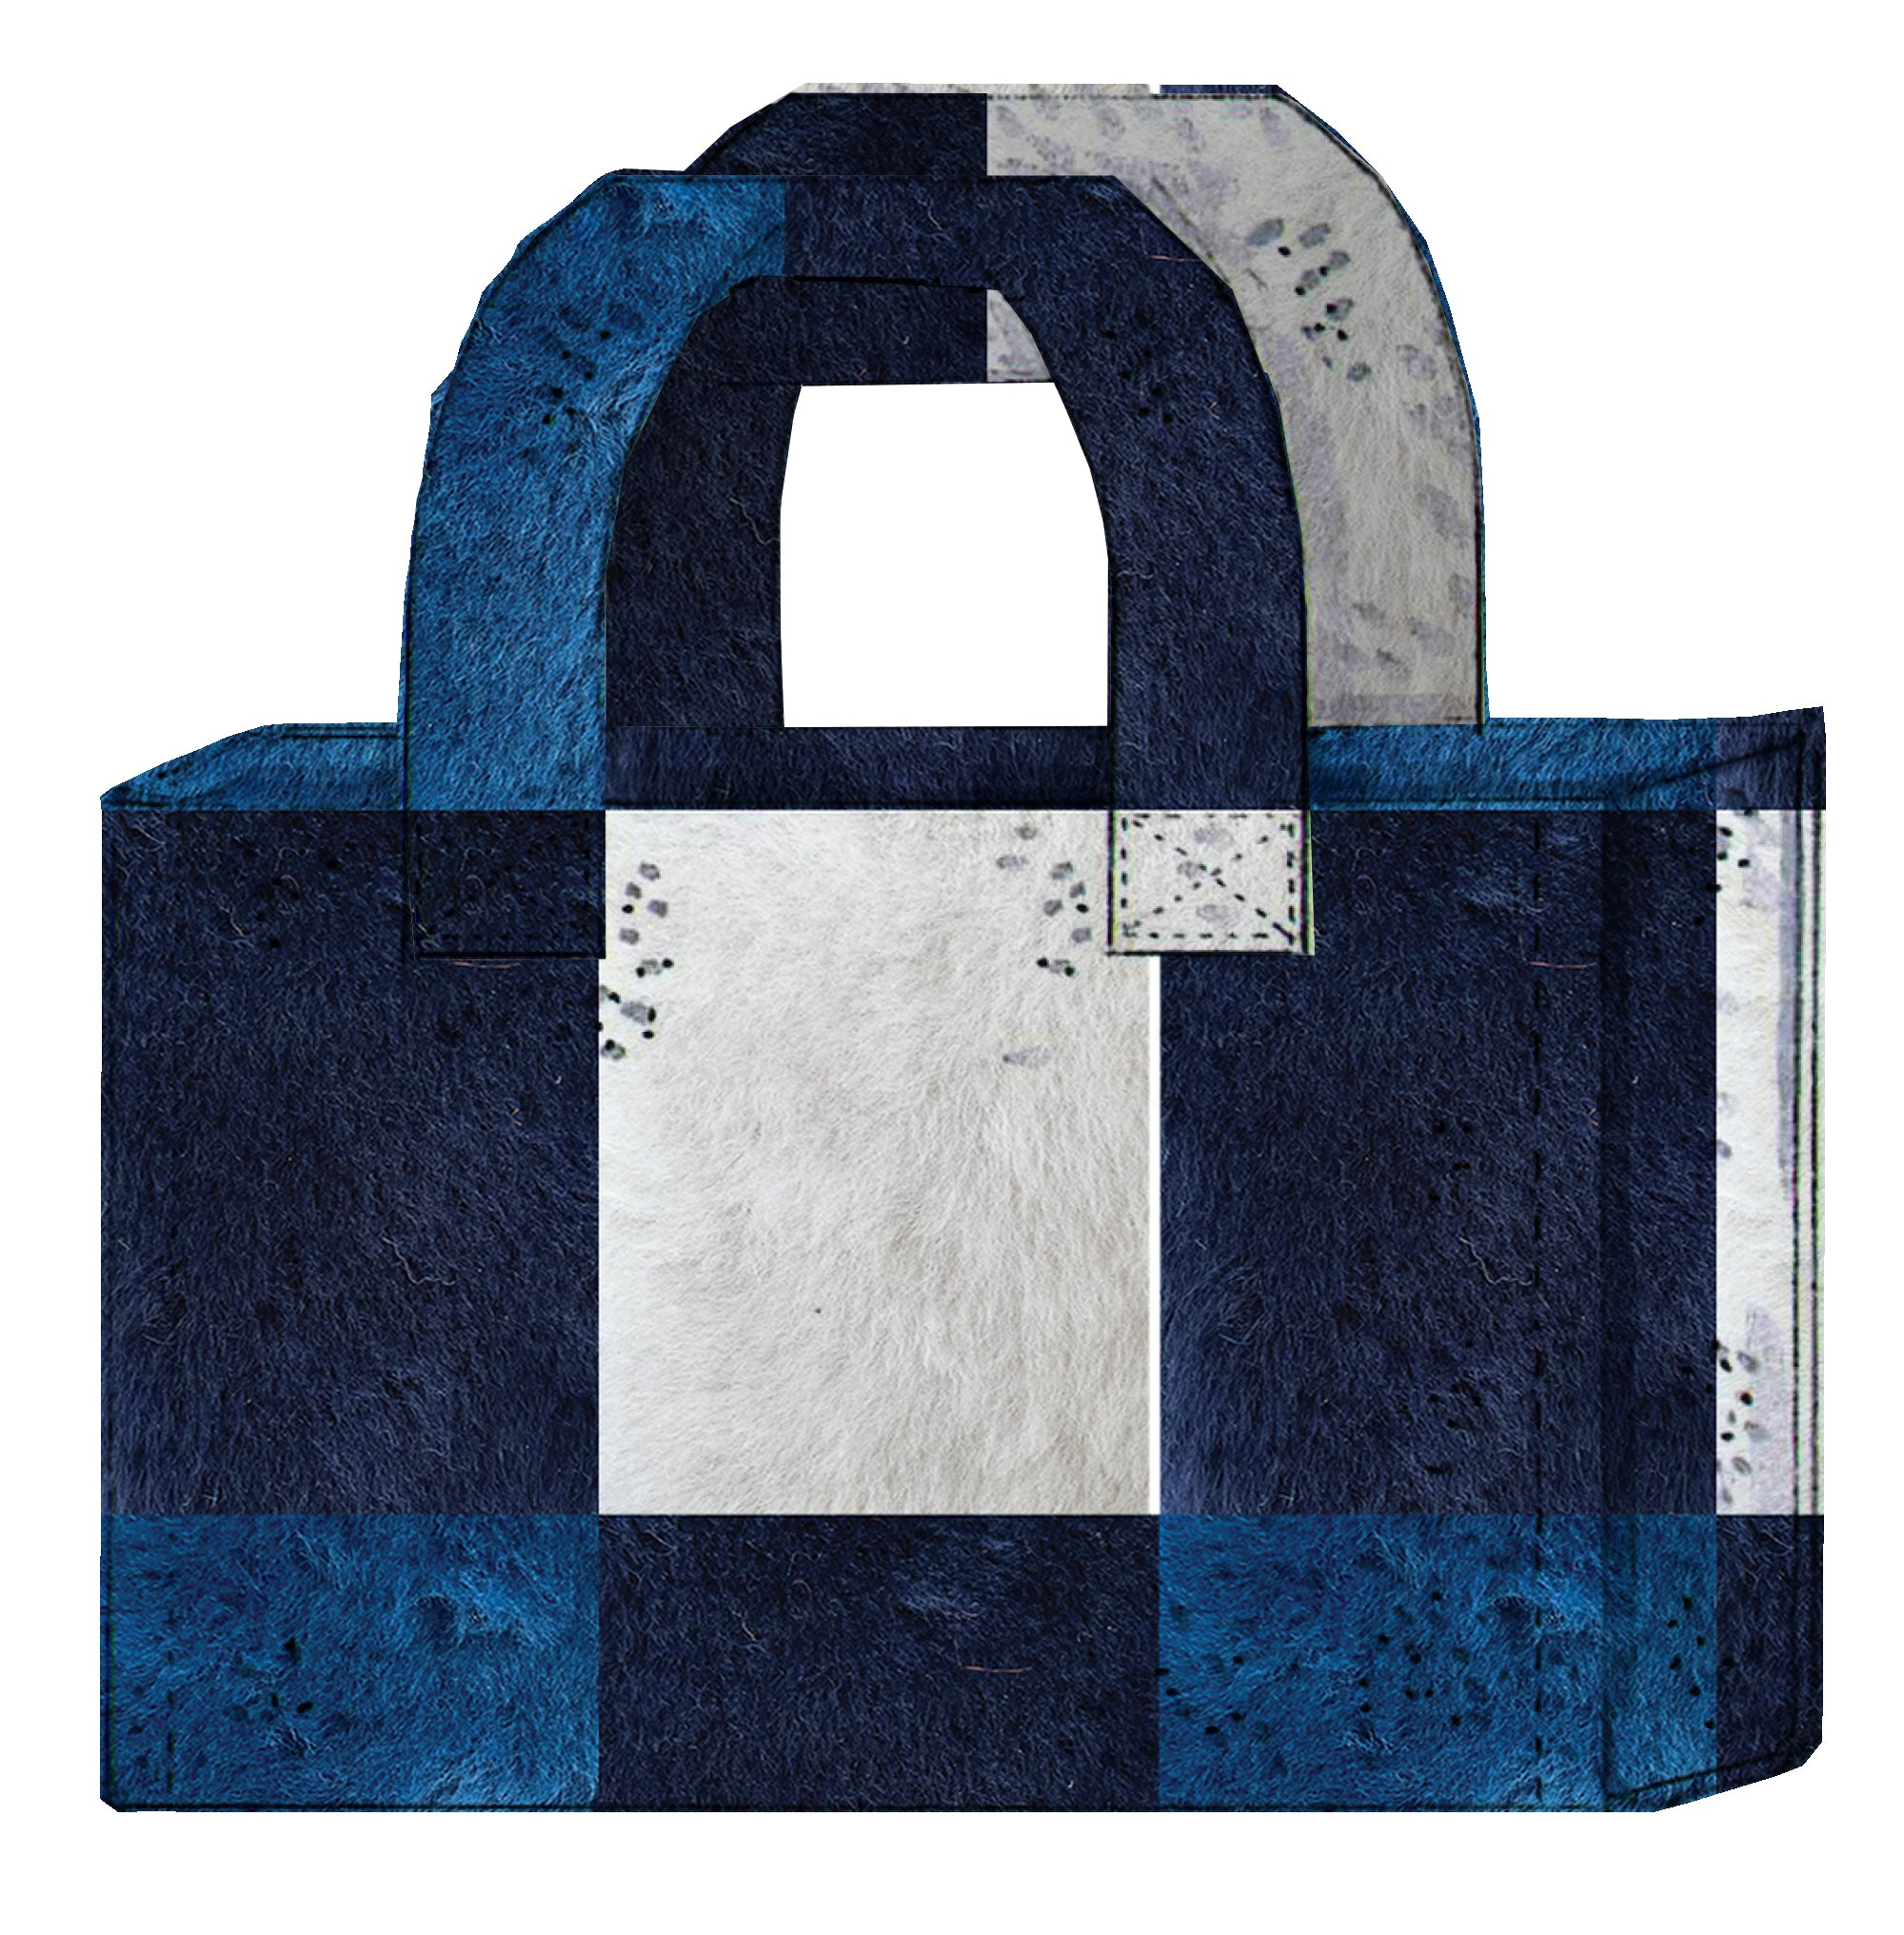 PATCHWORK FRENCH MERINO SHEARLING TOTE BAGS